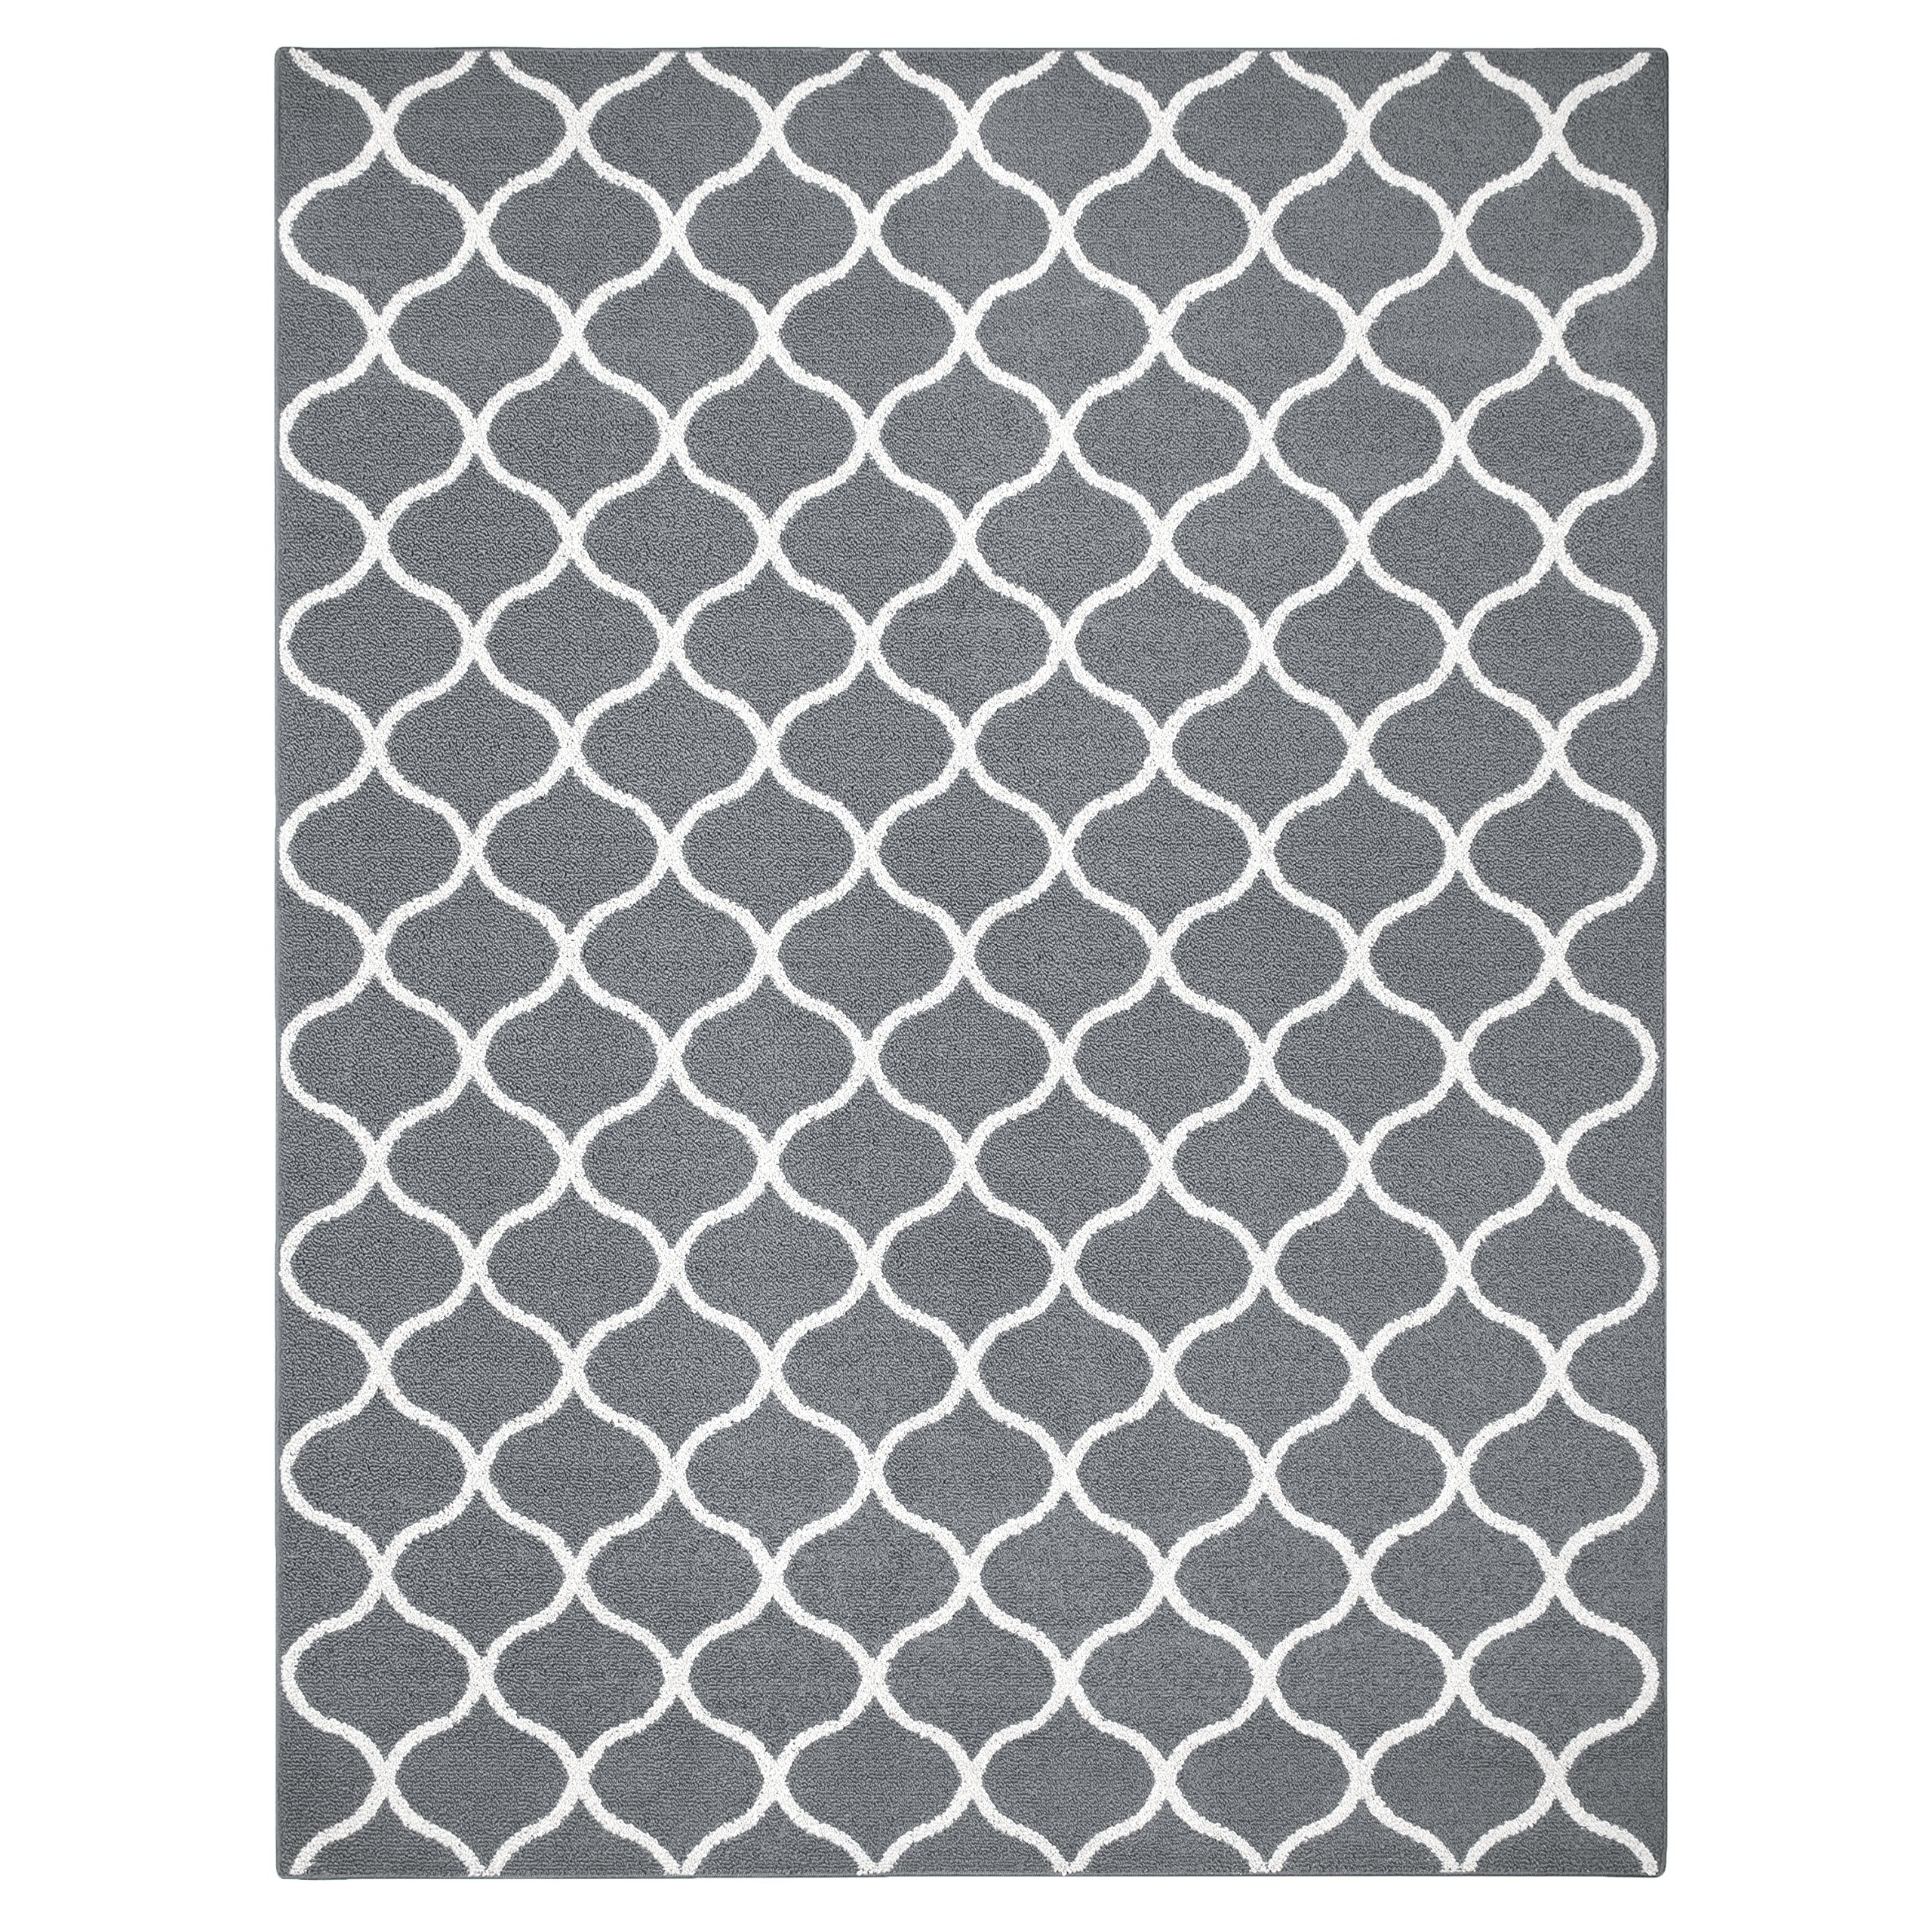 Maples Rugs Area Rugs, [Made in USA][Rebecca] 7' x 10' Non Slip Padded Large Rug for Living Room, Bedroom, and Dining Room - Grey/White